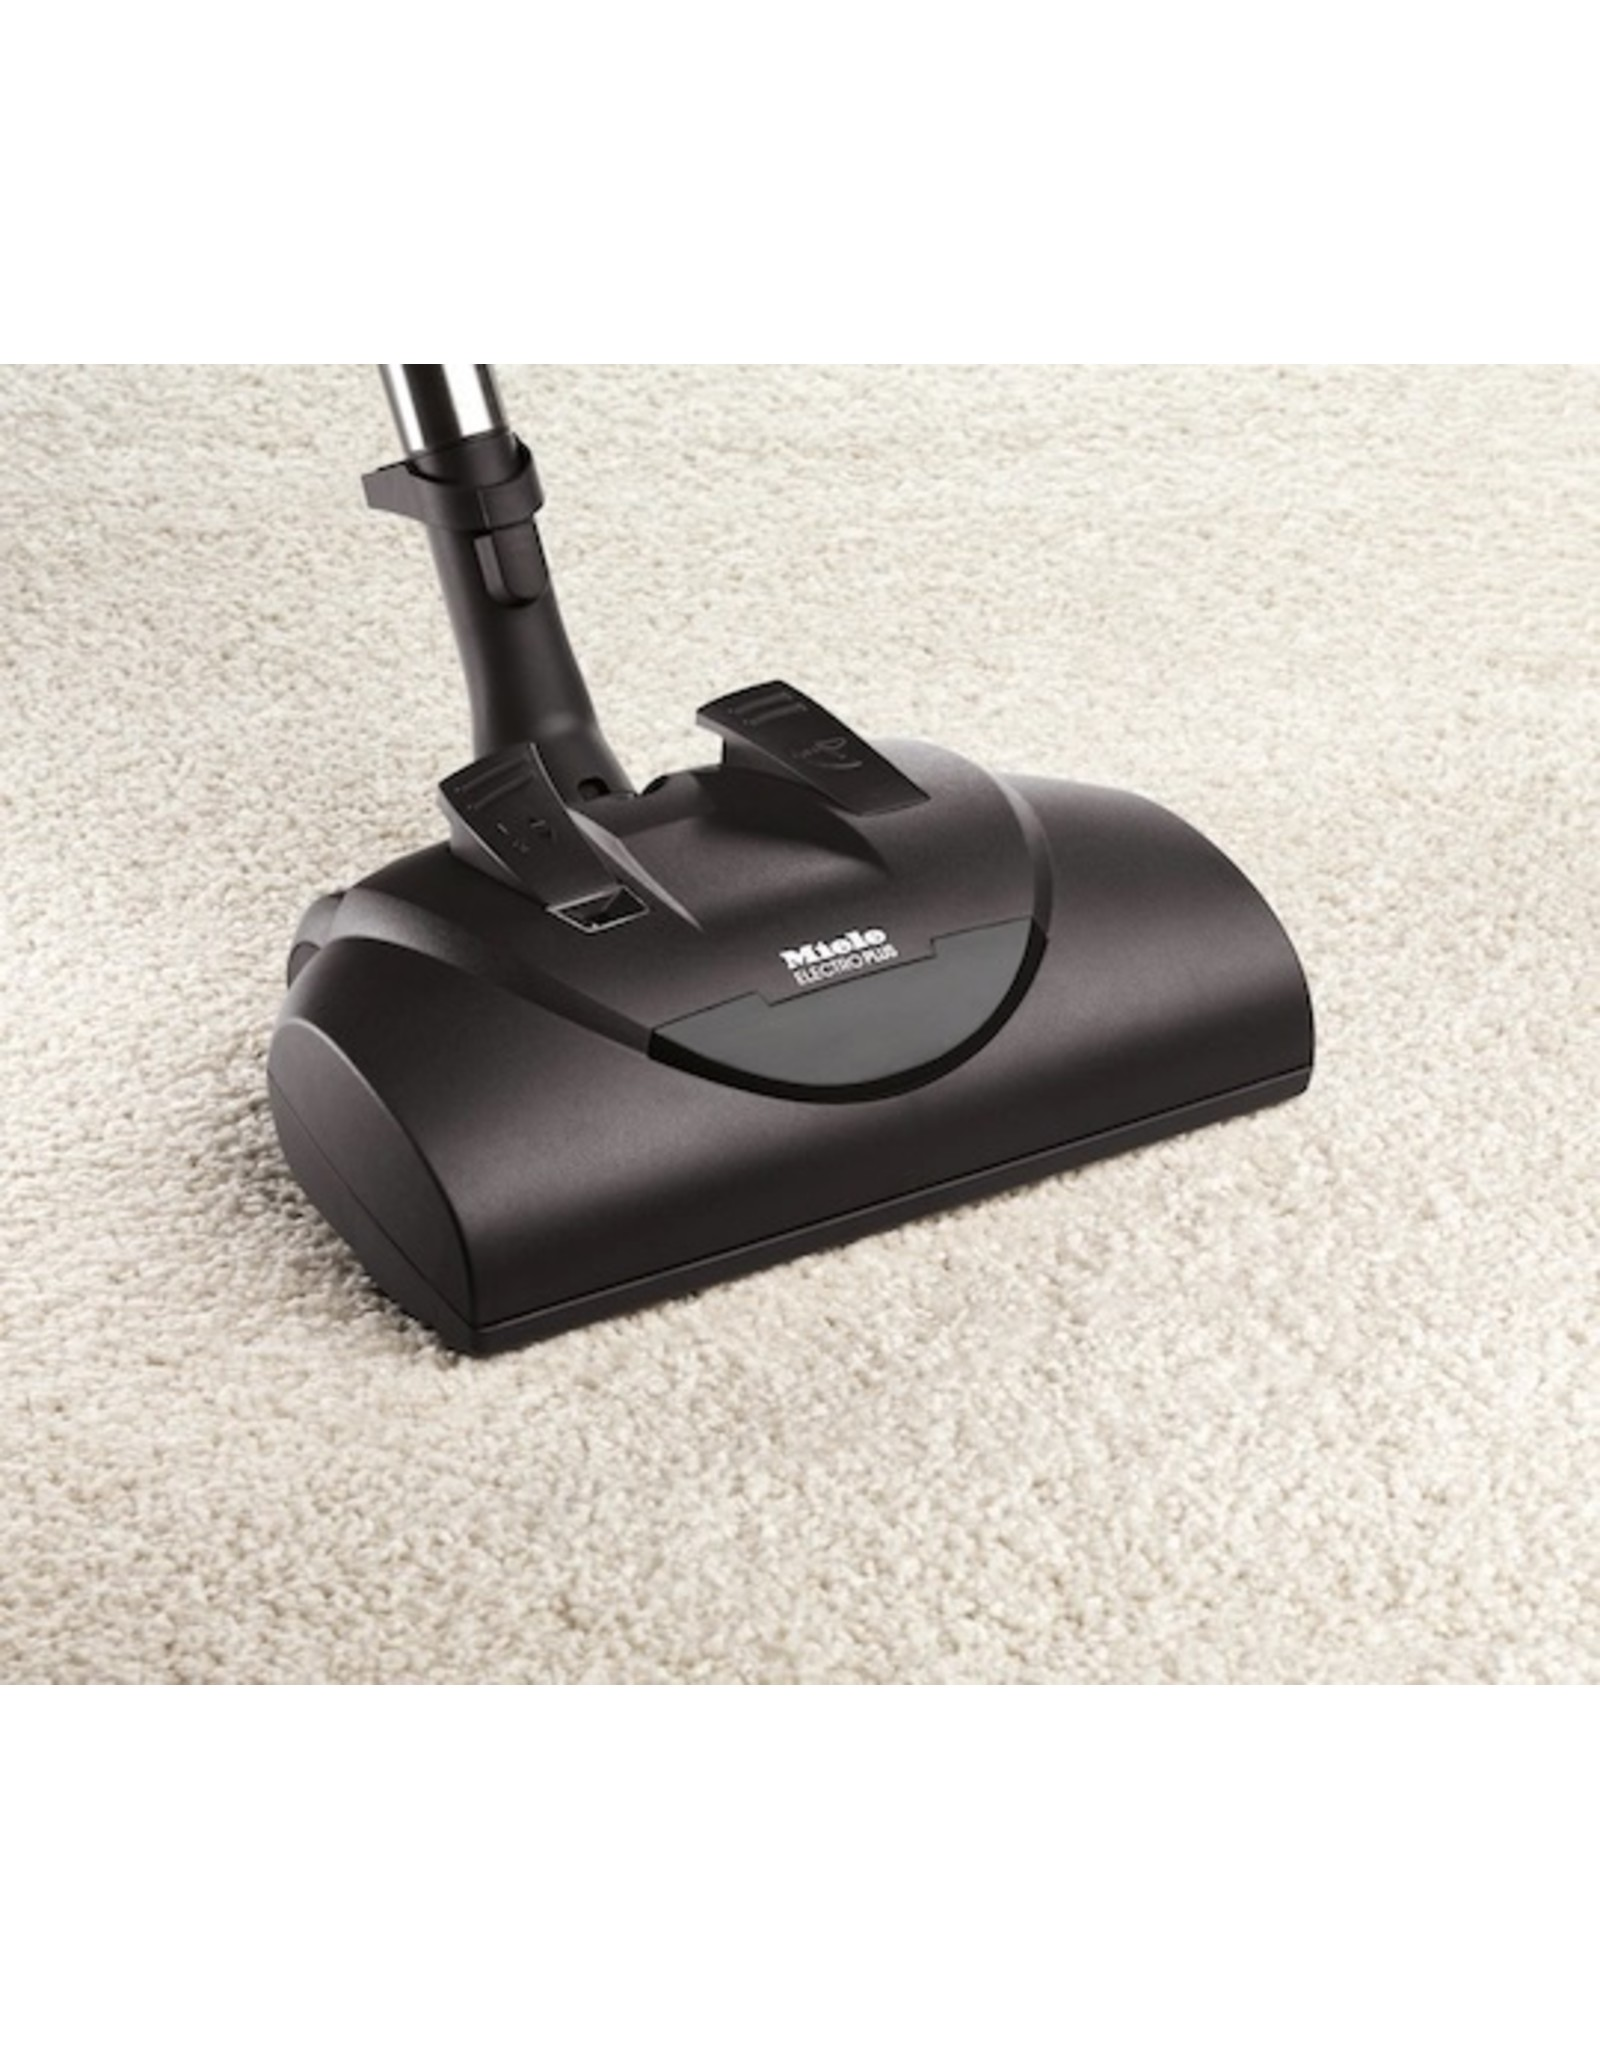 Miele Miele Compact C2 Electro+ PowerLine Canister Vacuum